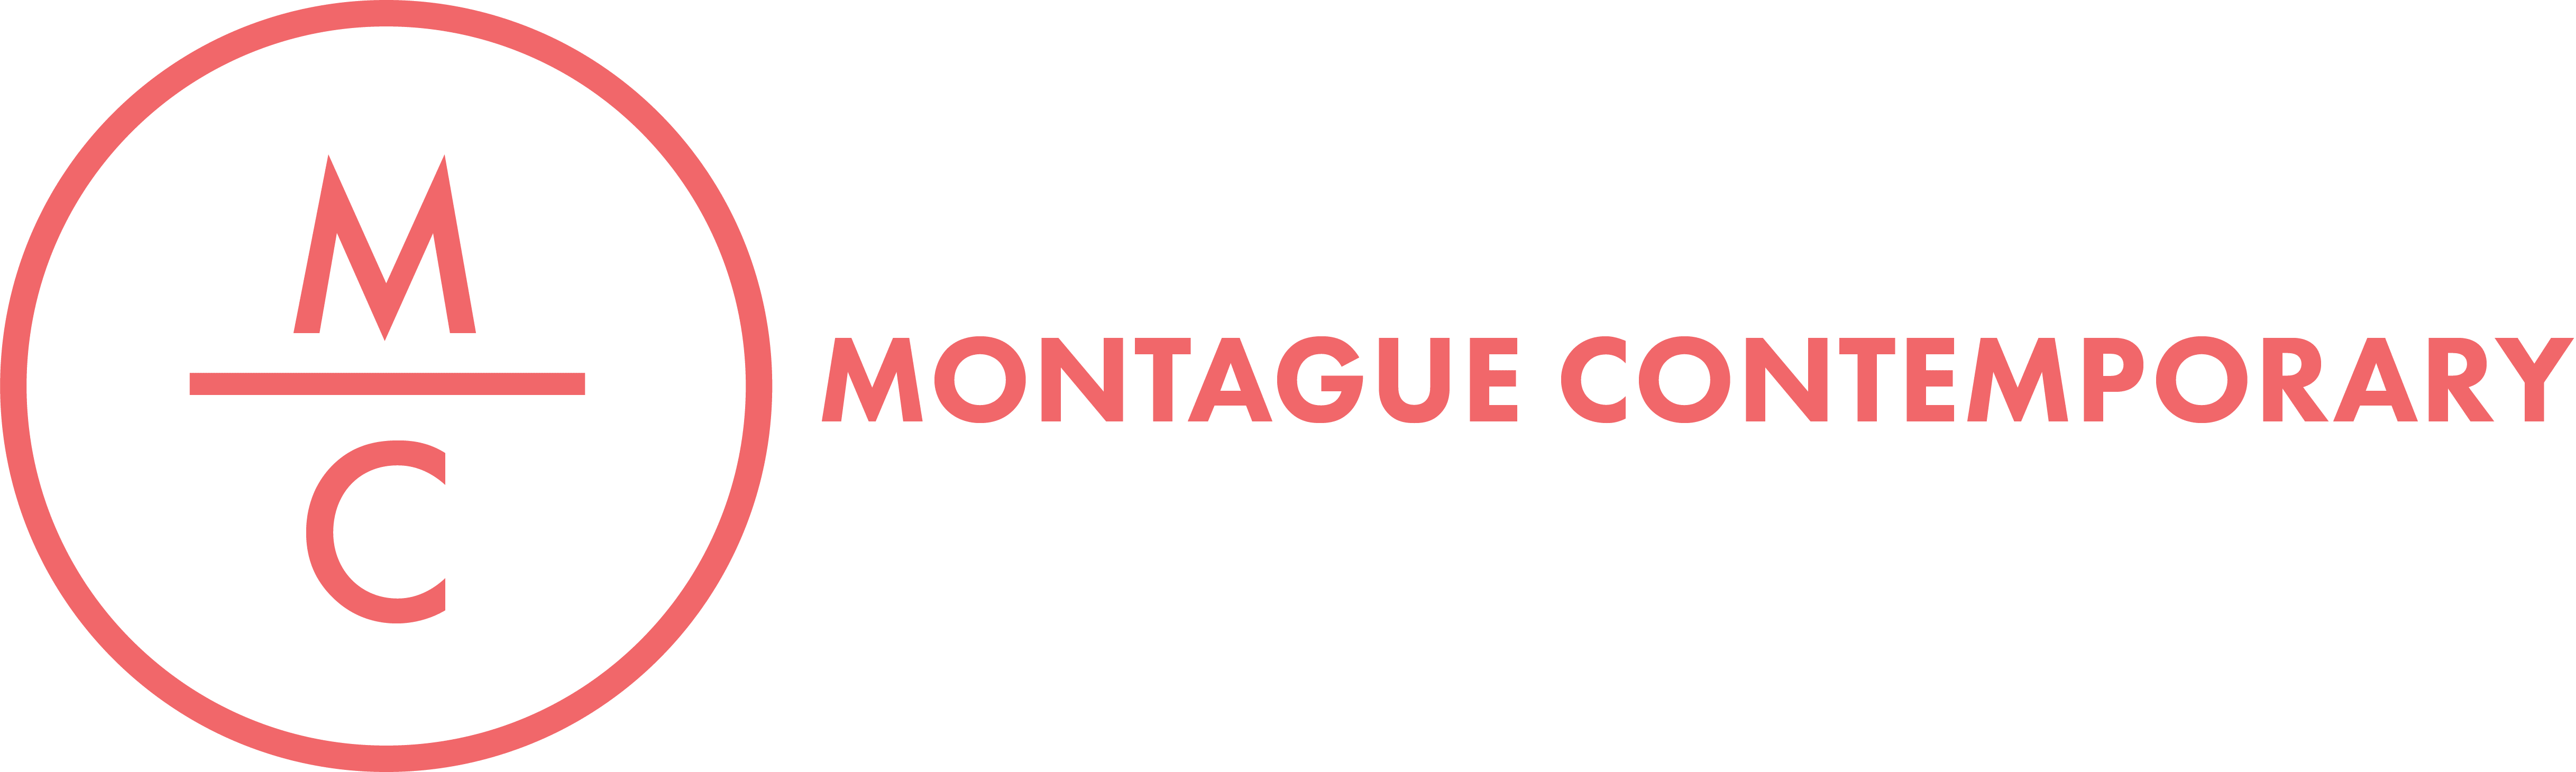 Montague Contemporary company logo